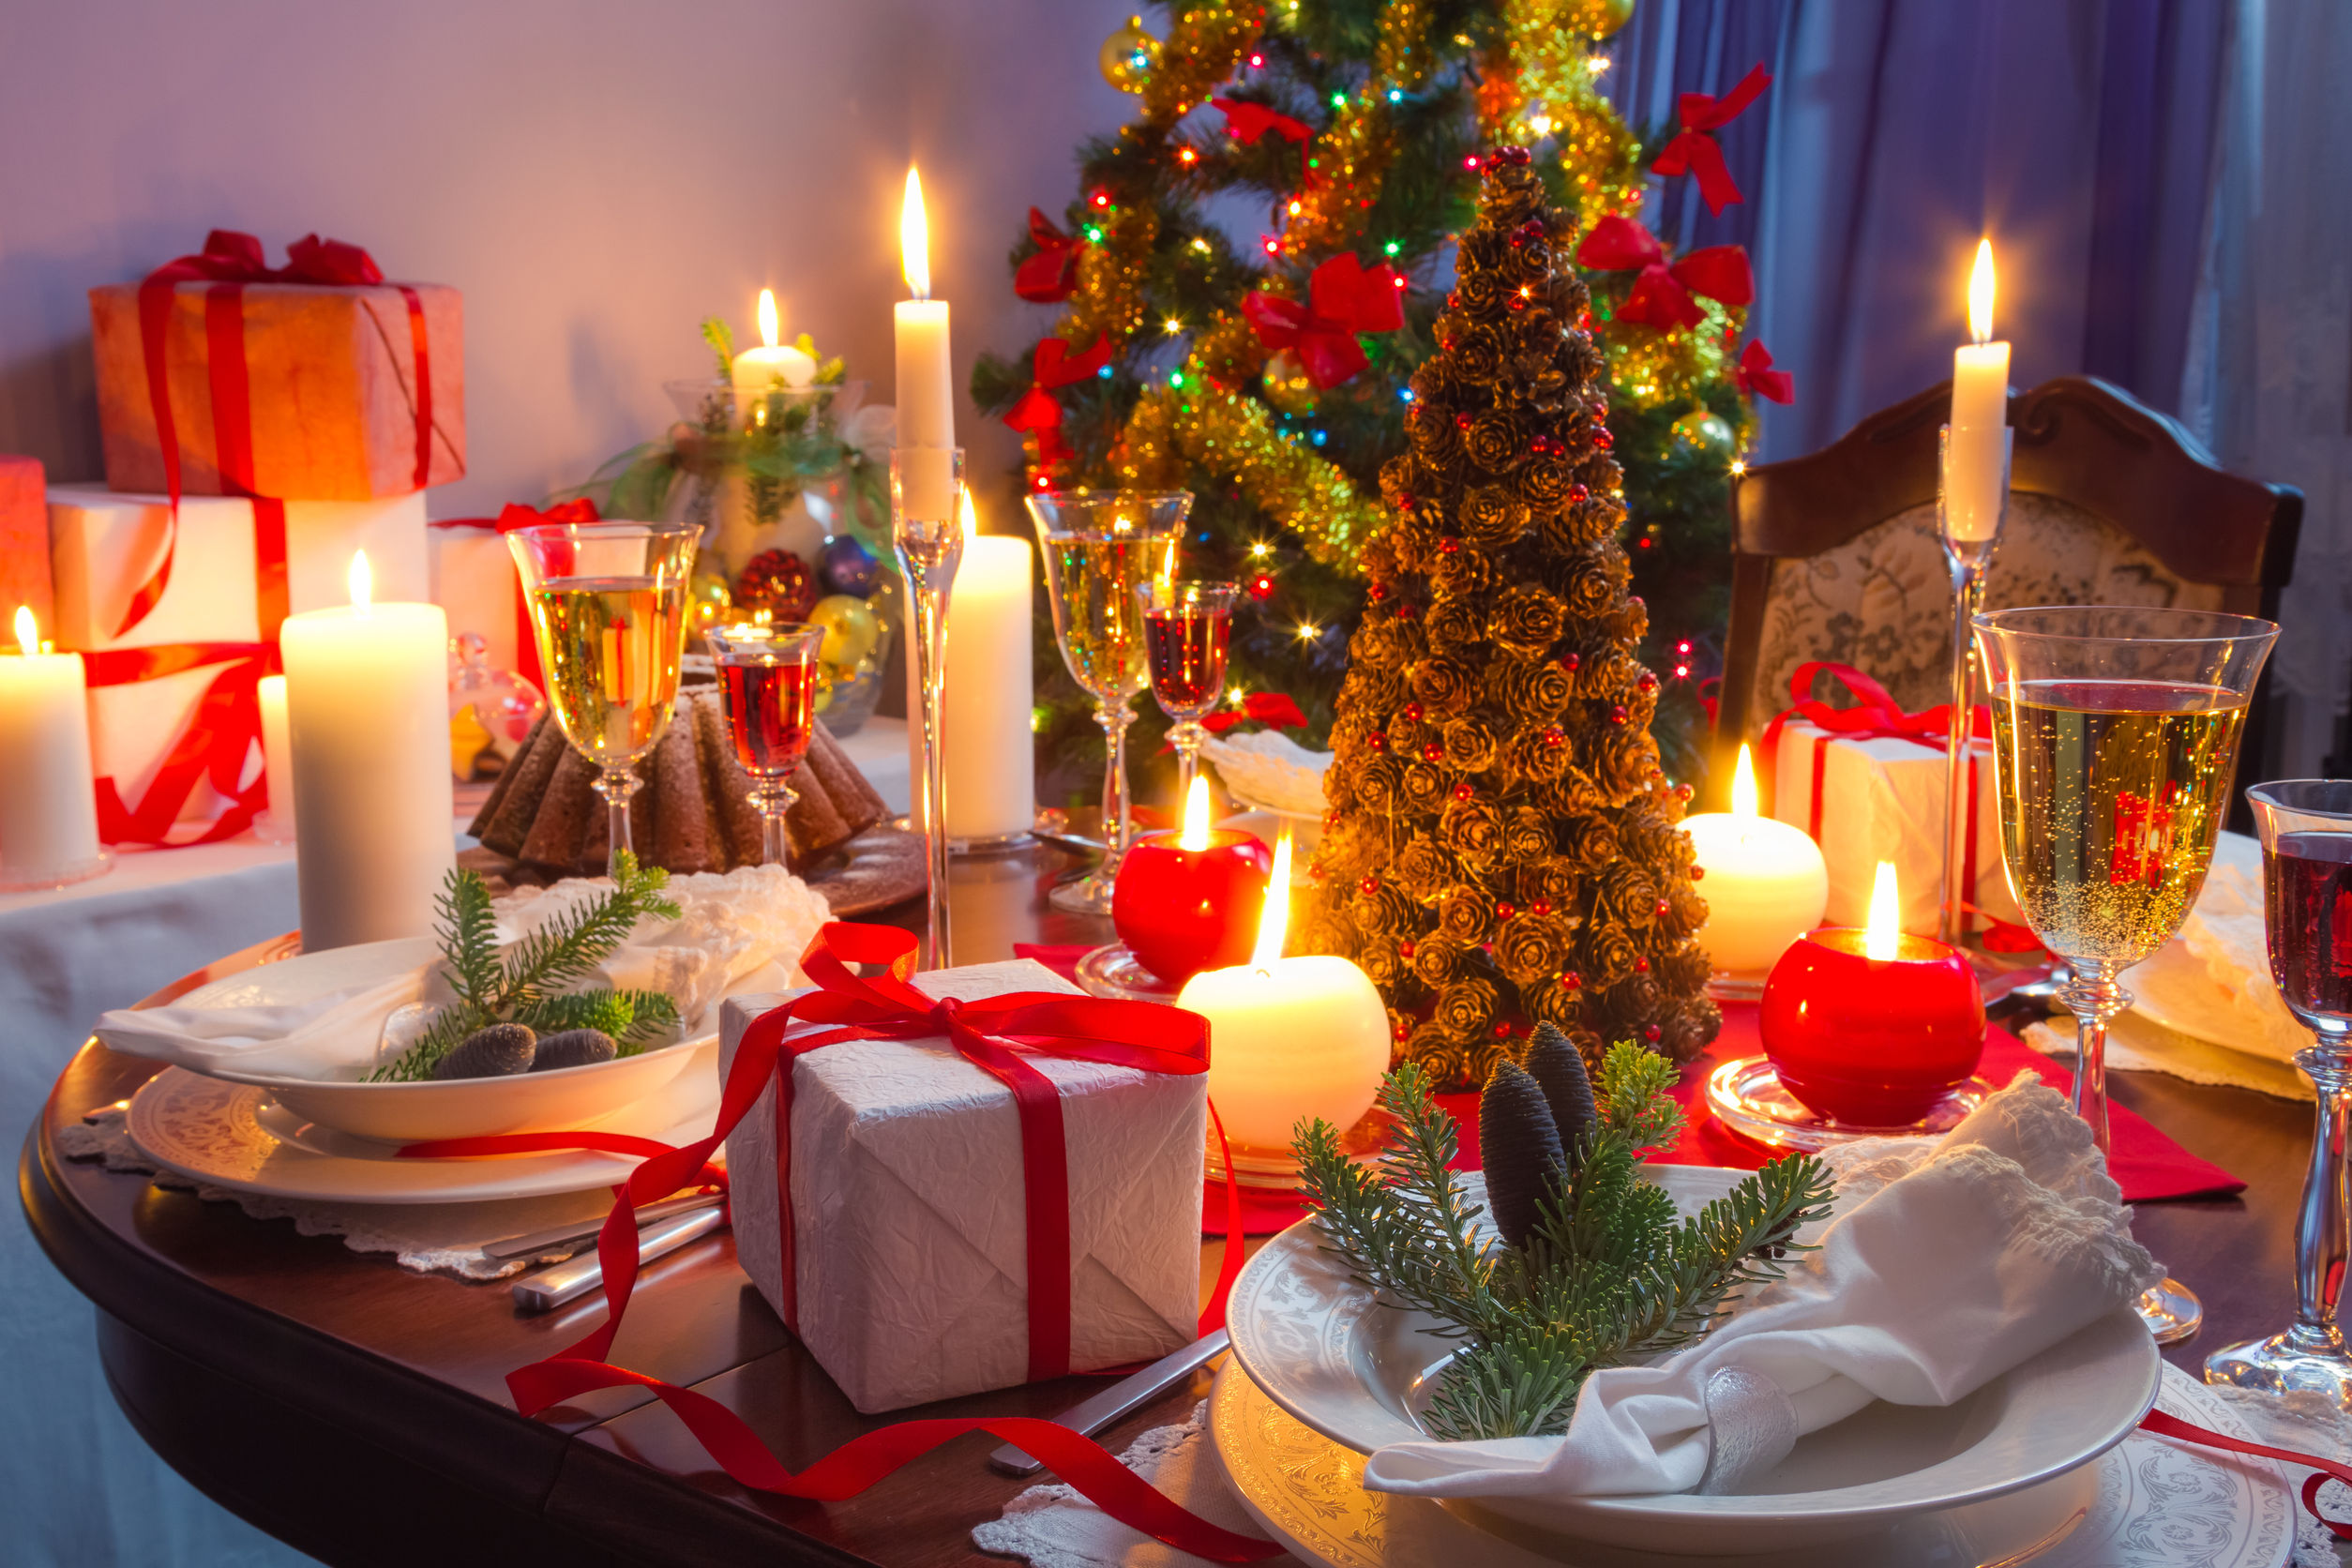 Great Tips for Managing Difficult Dynamics at Holiday Gatherings